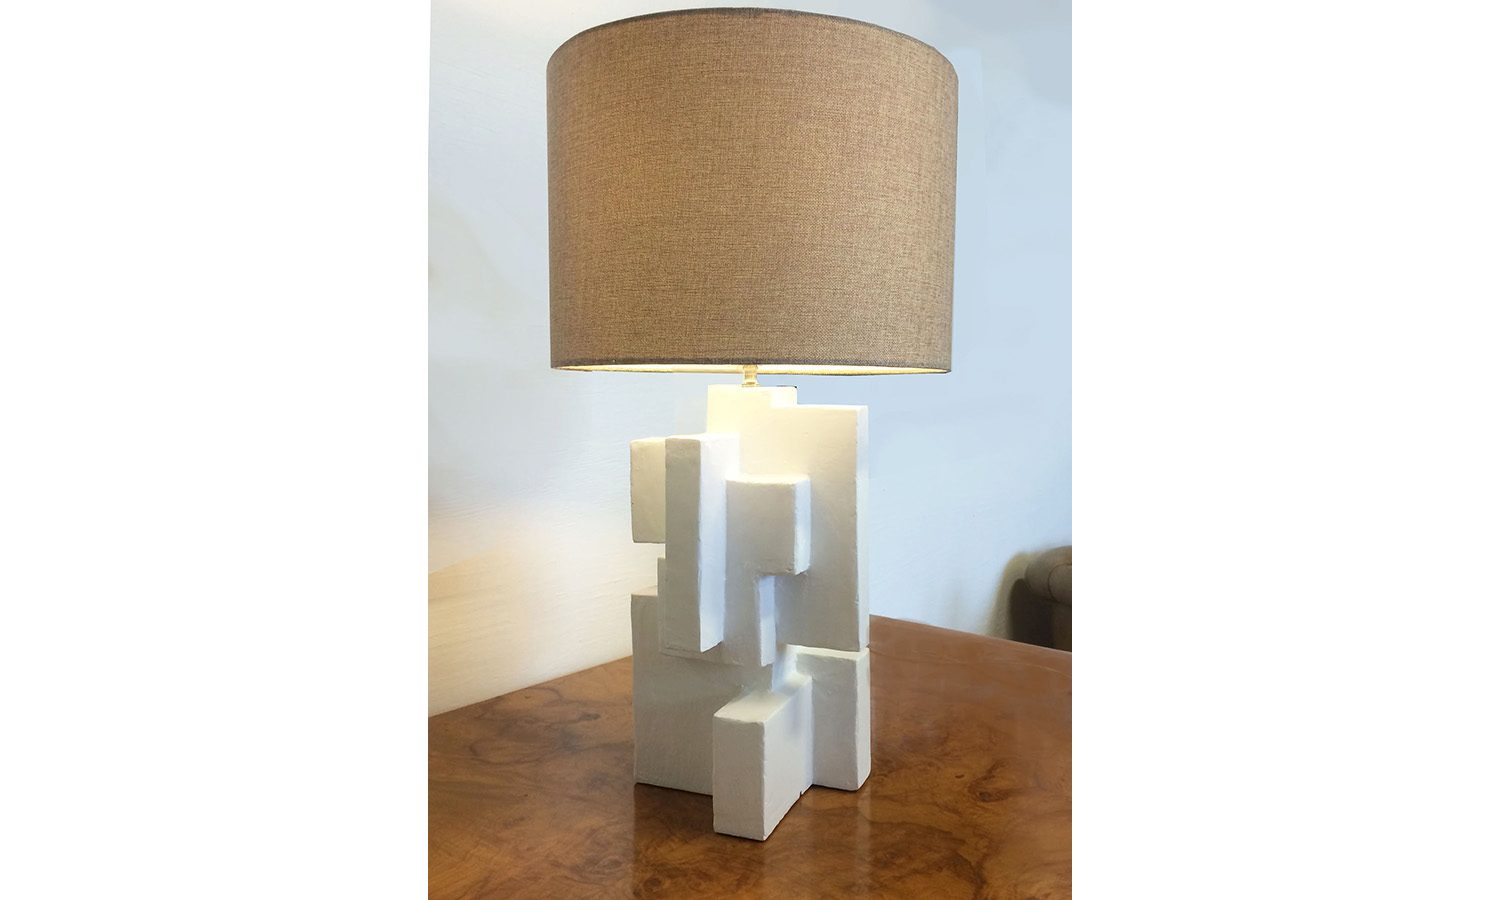 "ABITARE TABLE LAMP I, mixed media, 18"" x 12"" x 12"", 2015"